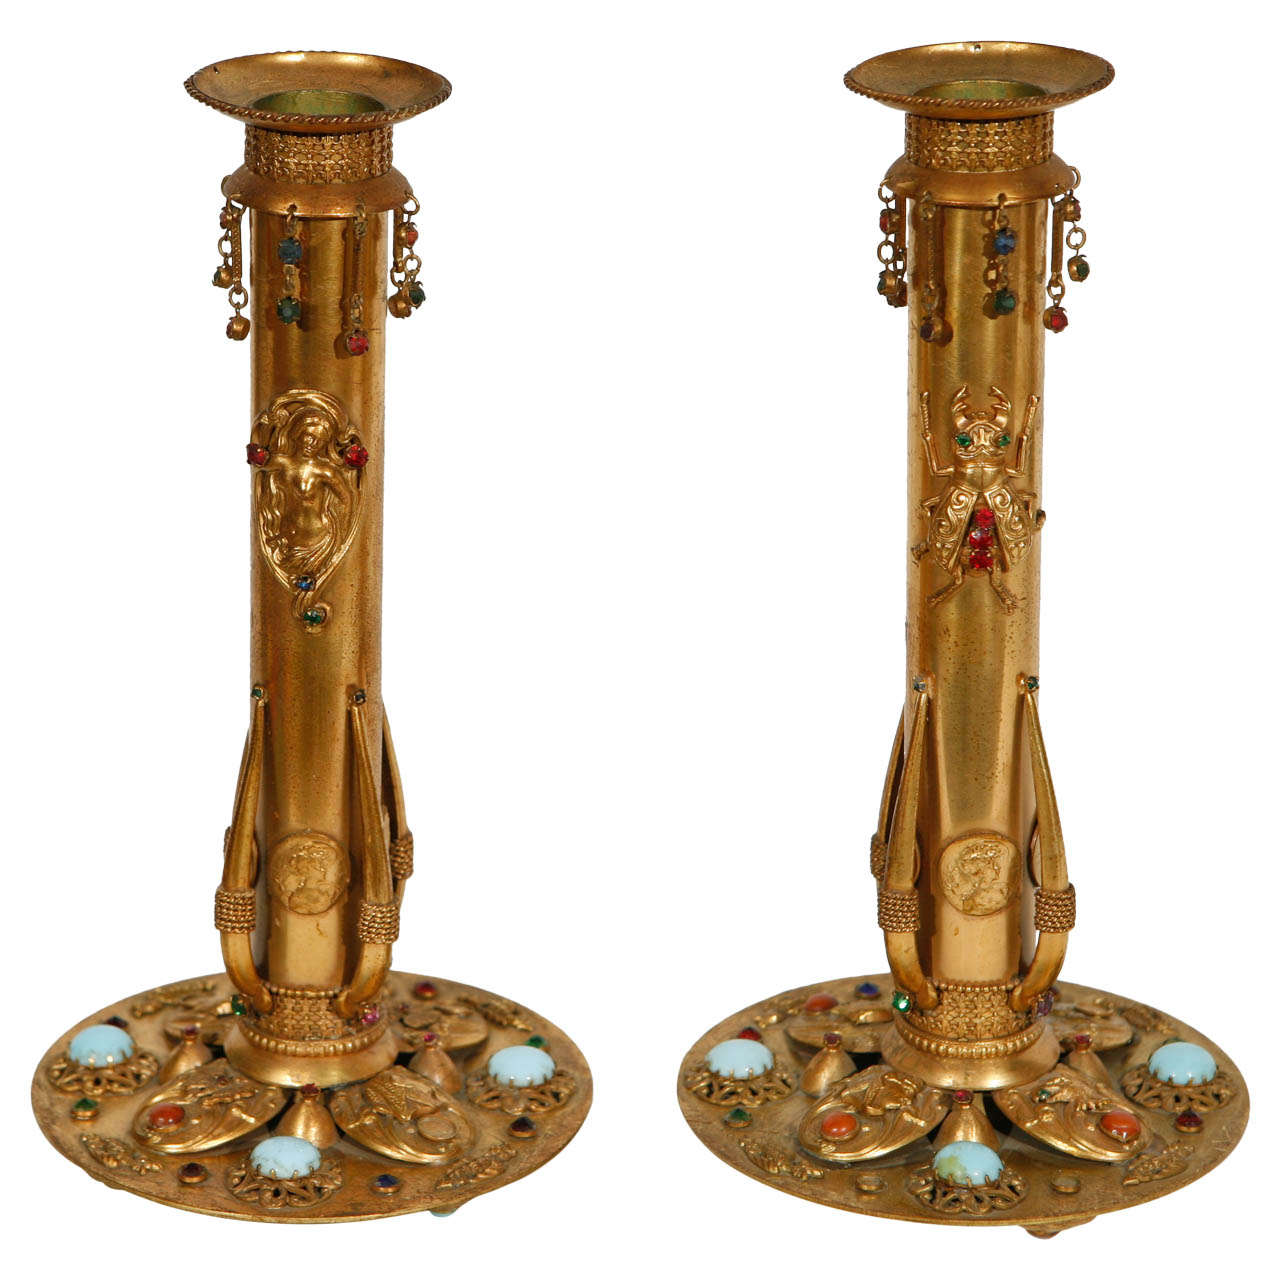 Pair of Circa 1900 French Egyptian Revival  Bronze Candlesticks